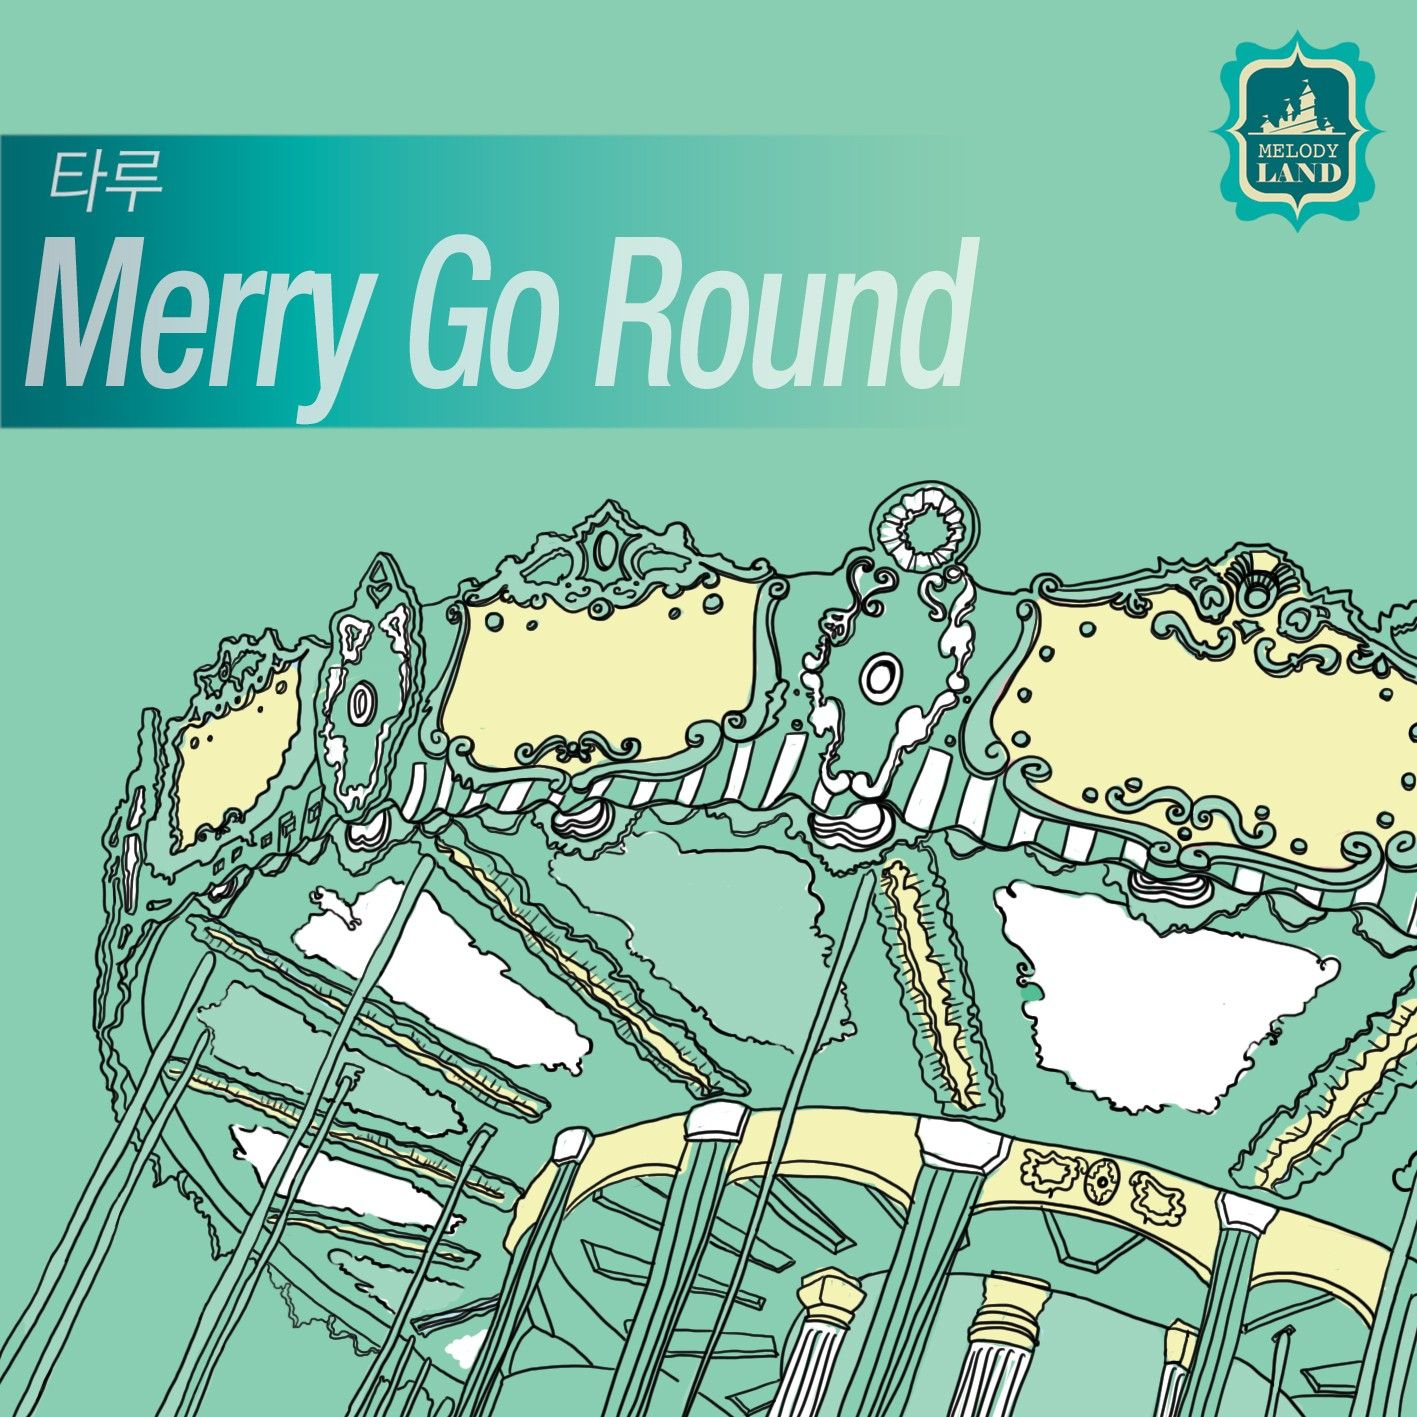 [Single] Taru - Merry Go Round